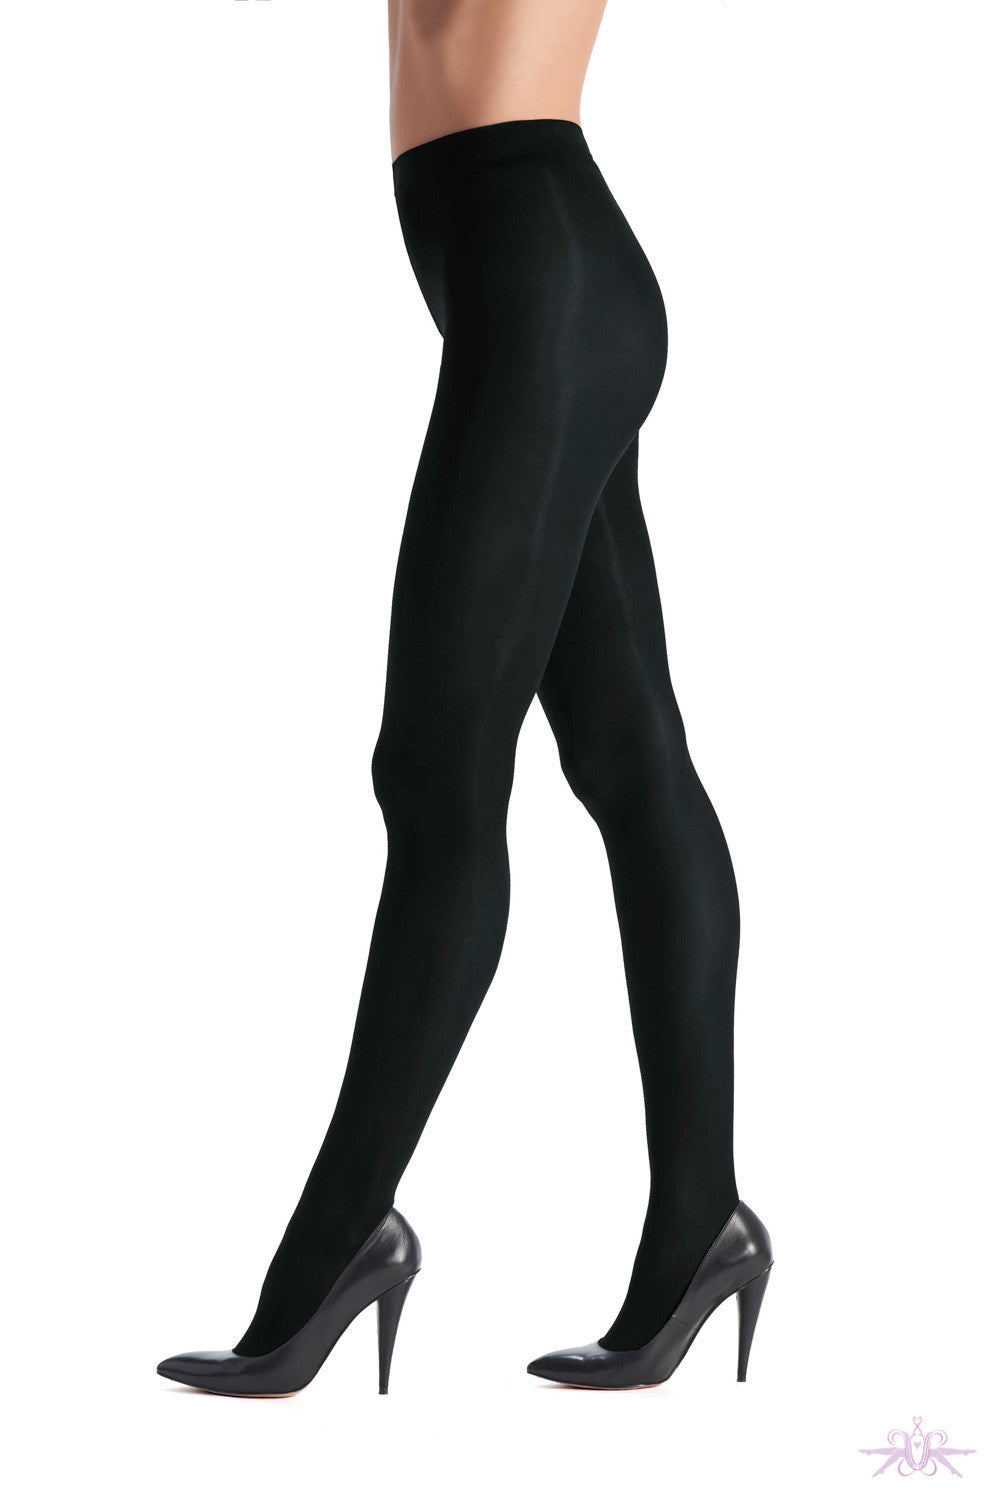 Oroblu All Colours 50 Opaque Tight - Mayfair Stockings - Oroblu - Tights - 1